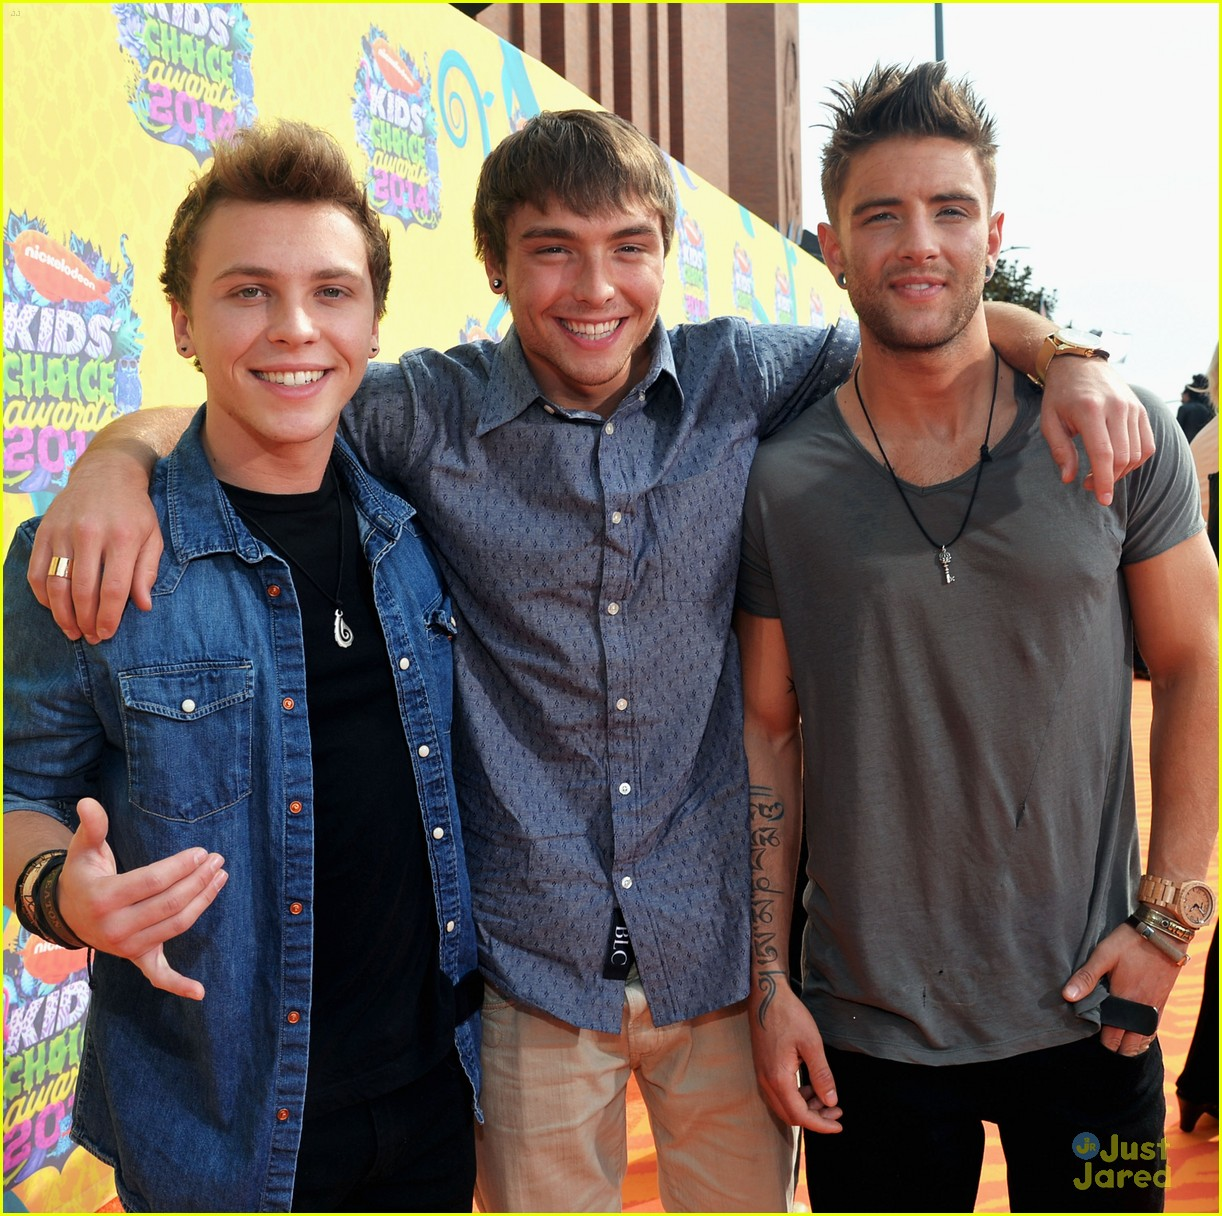 slime faces ready emblem3 hit up kids choice awards